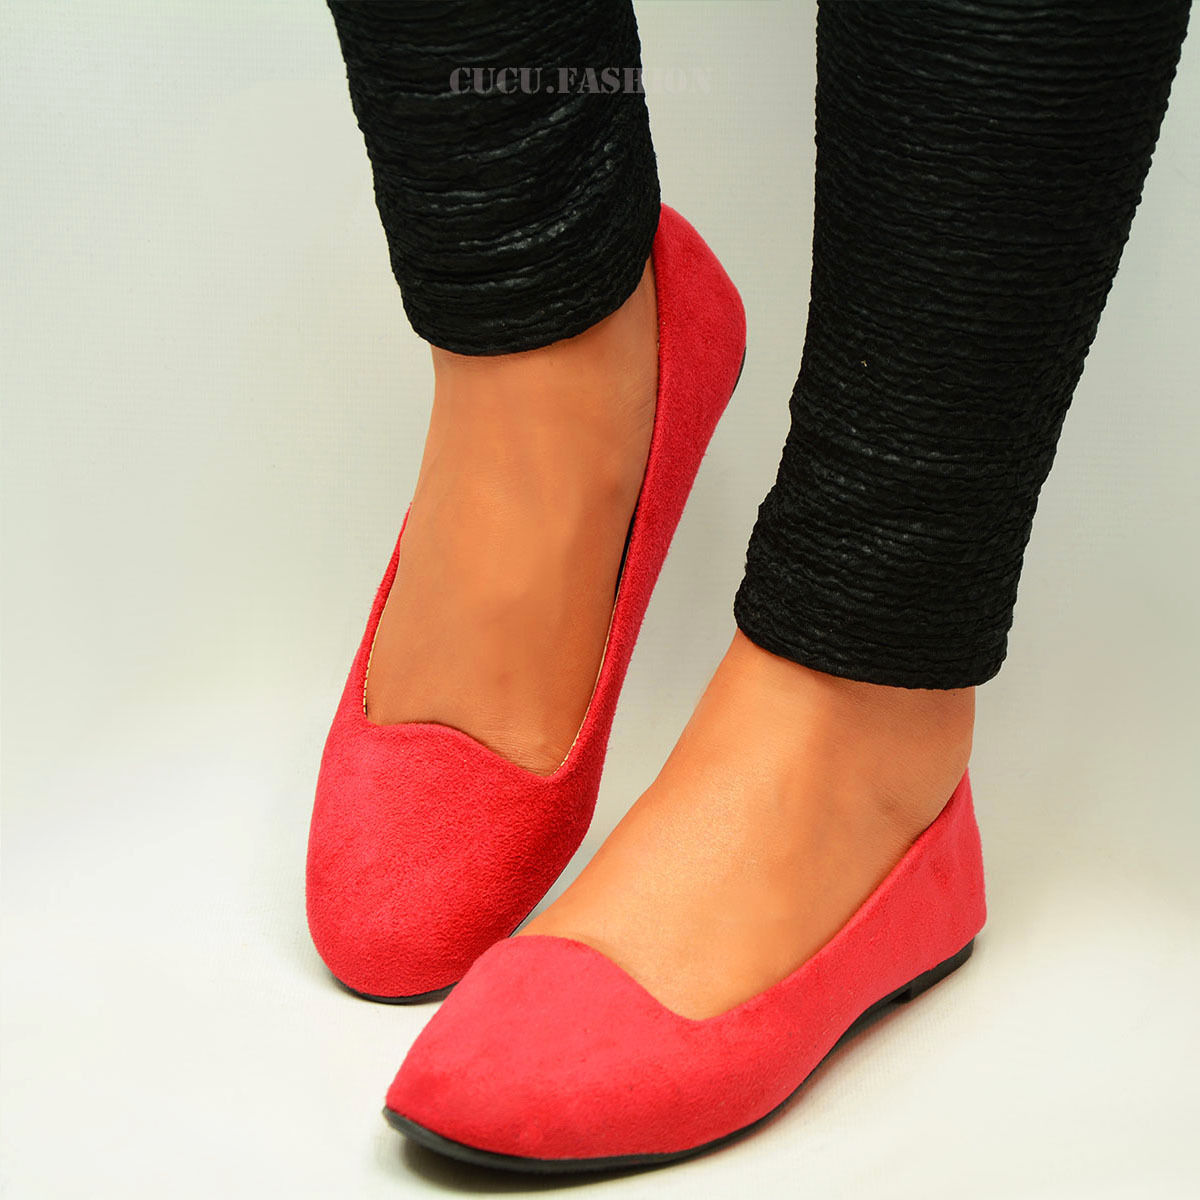 Womens-Ballerina-Ballet-Dolly-Pumps-Ladies-Flat-Black-Loafers-Shoes-Size-New-Uk thumbnail 10